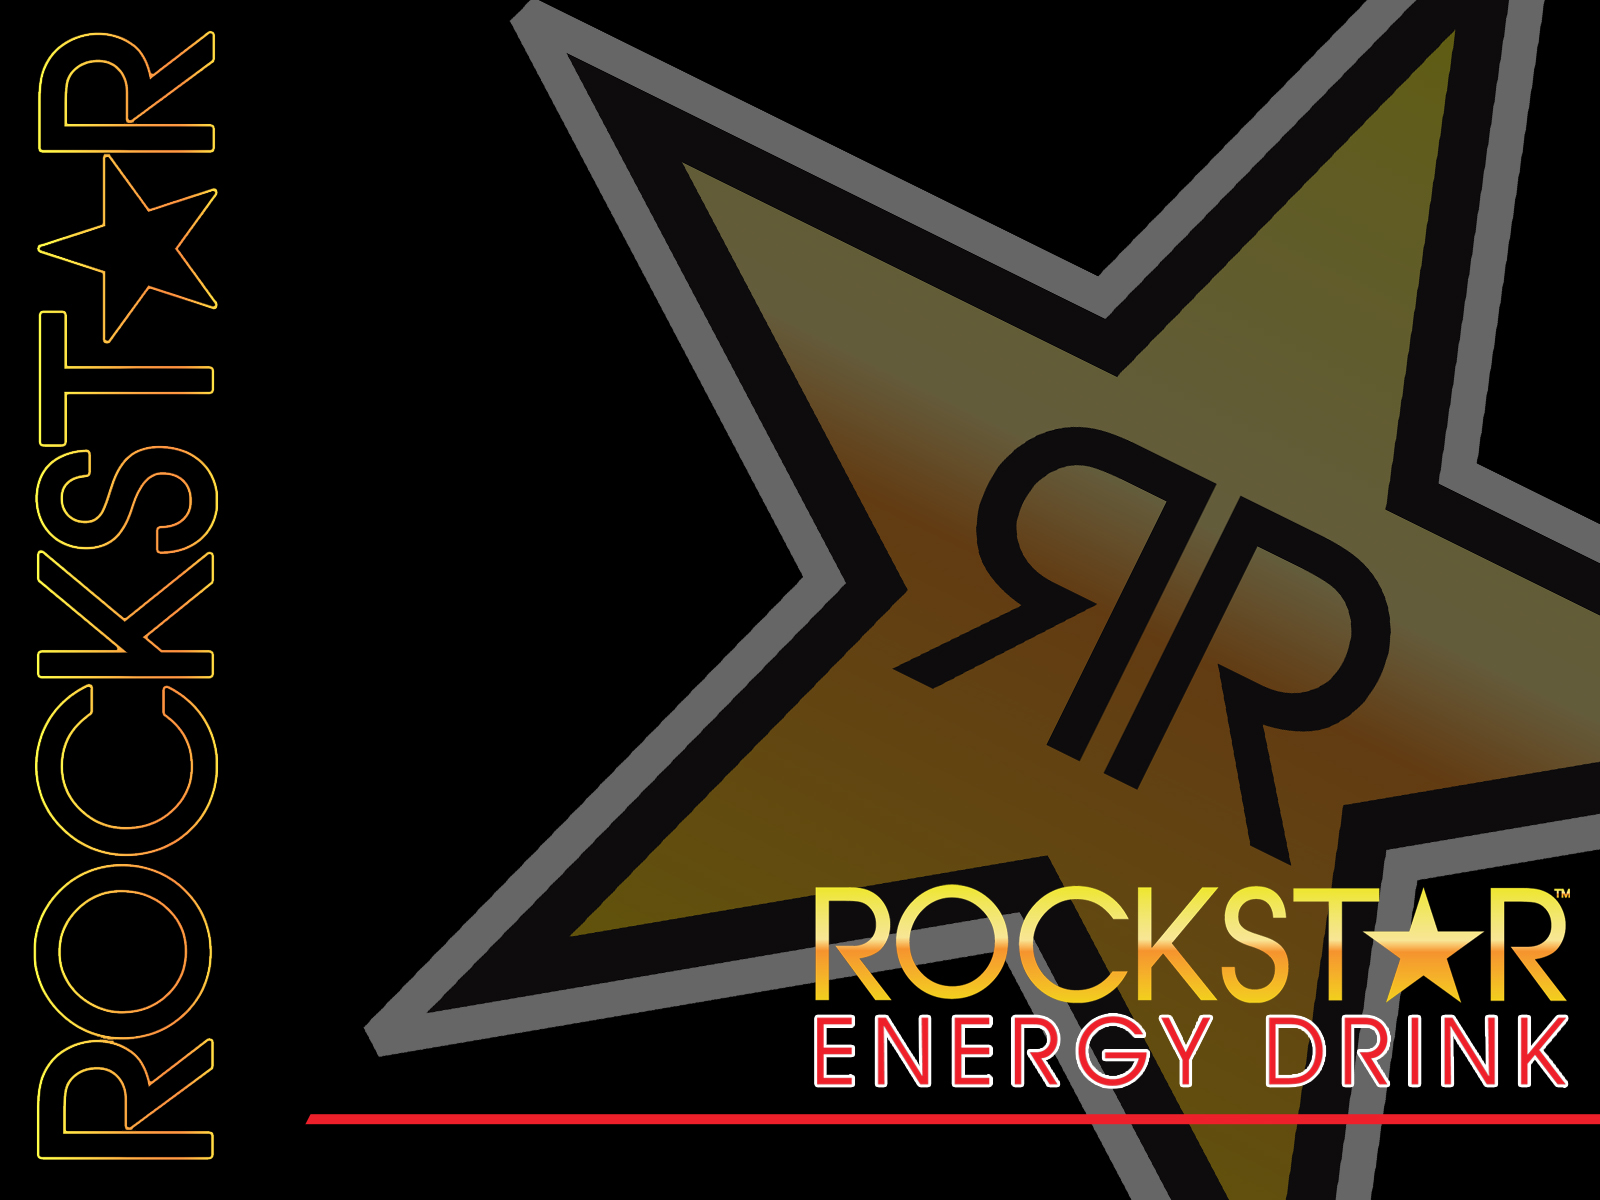 Rockstar Energy Logo wallpaper 1600x1200 80108 1600x1200